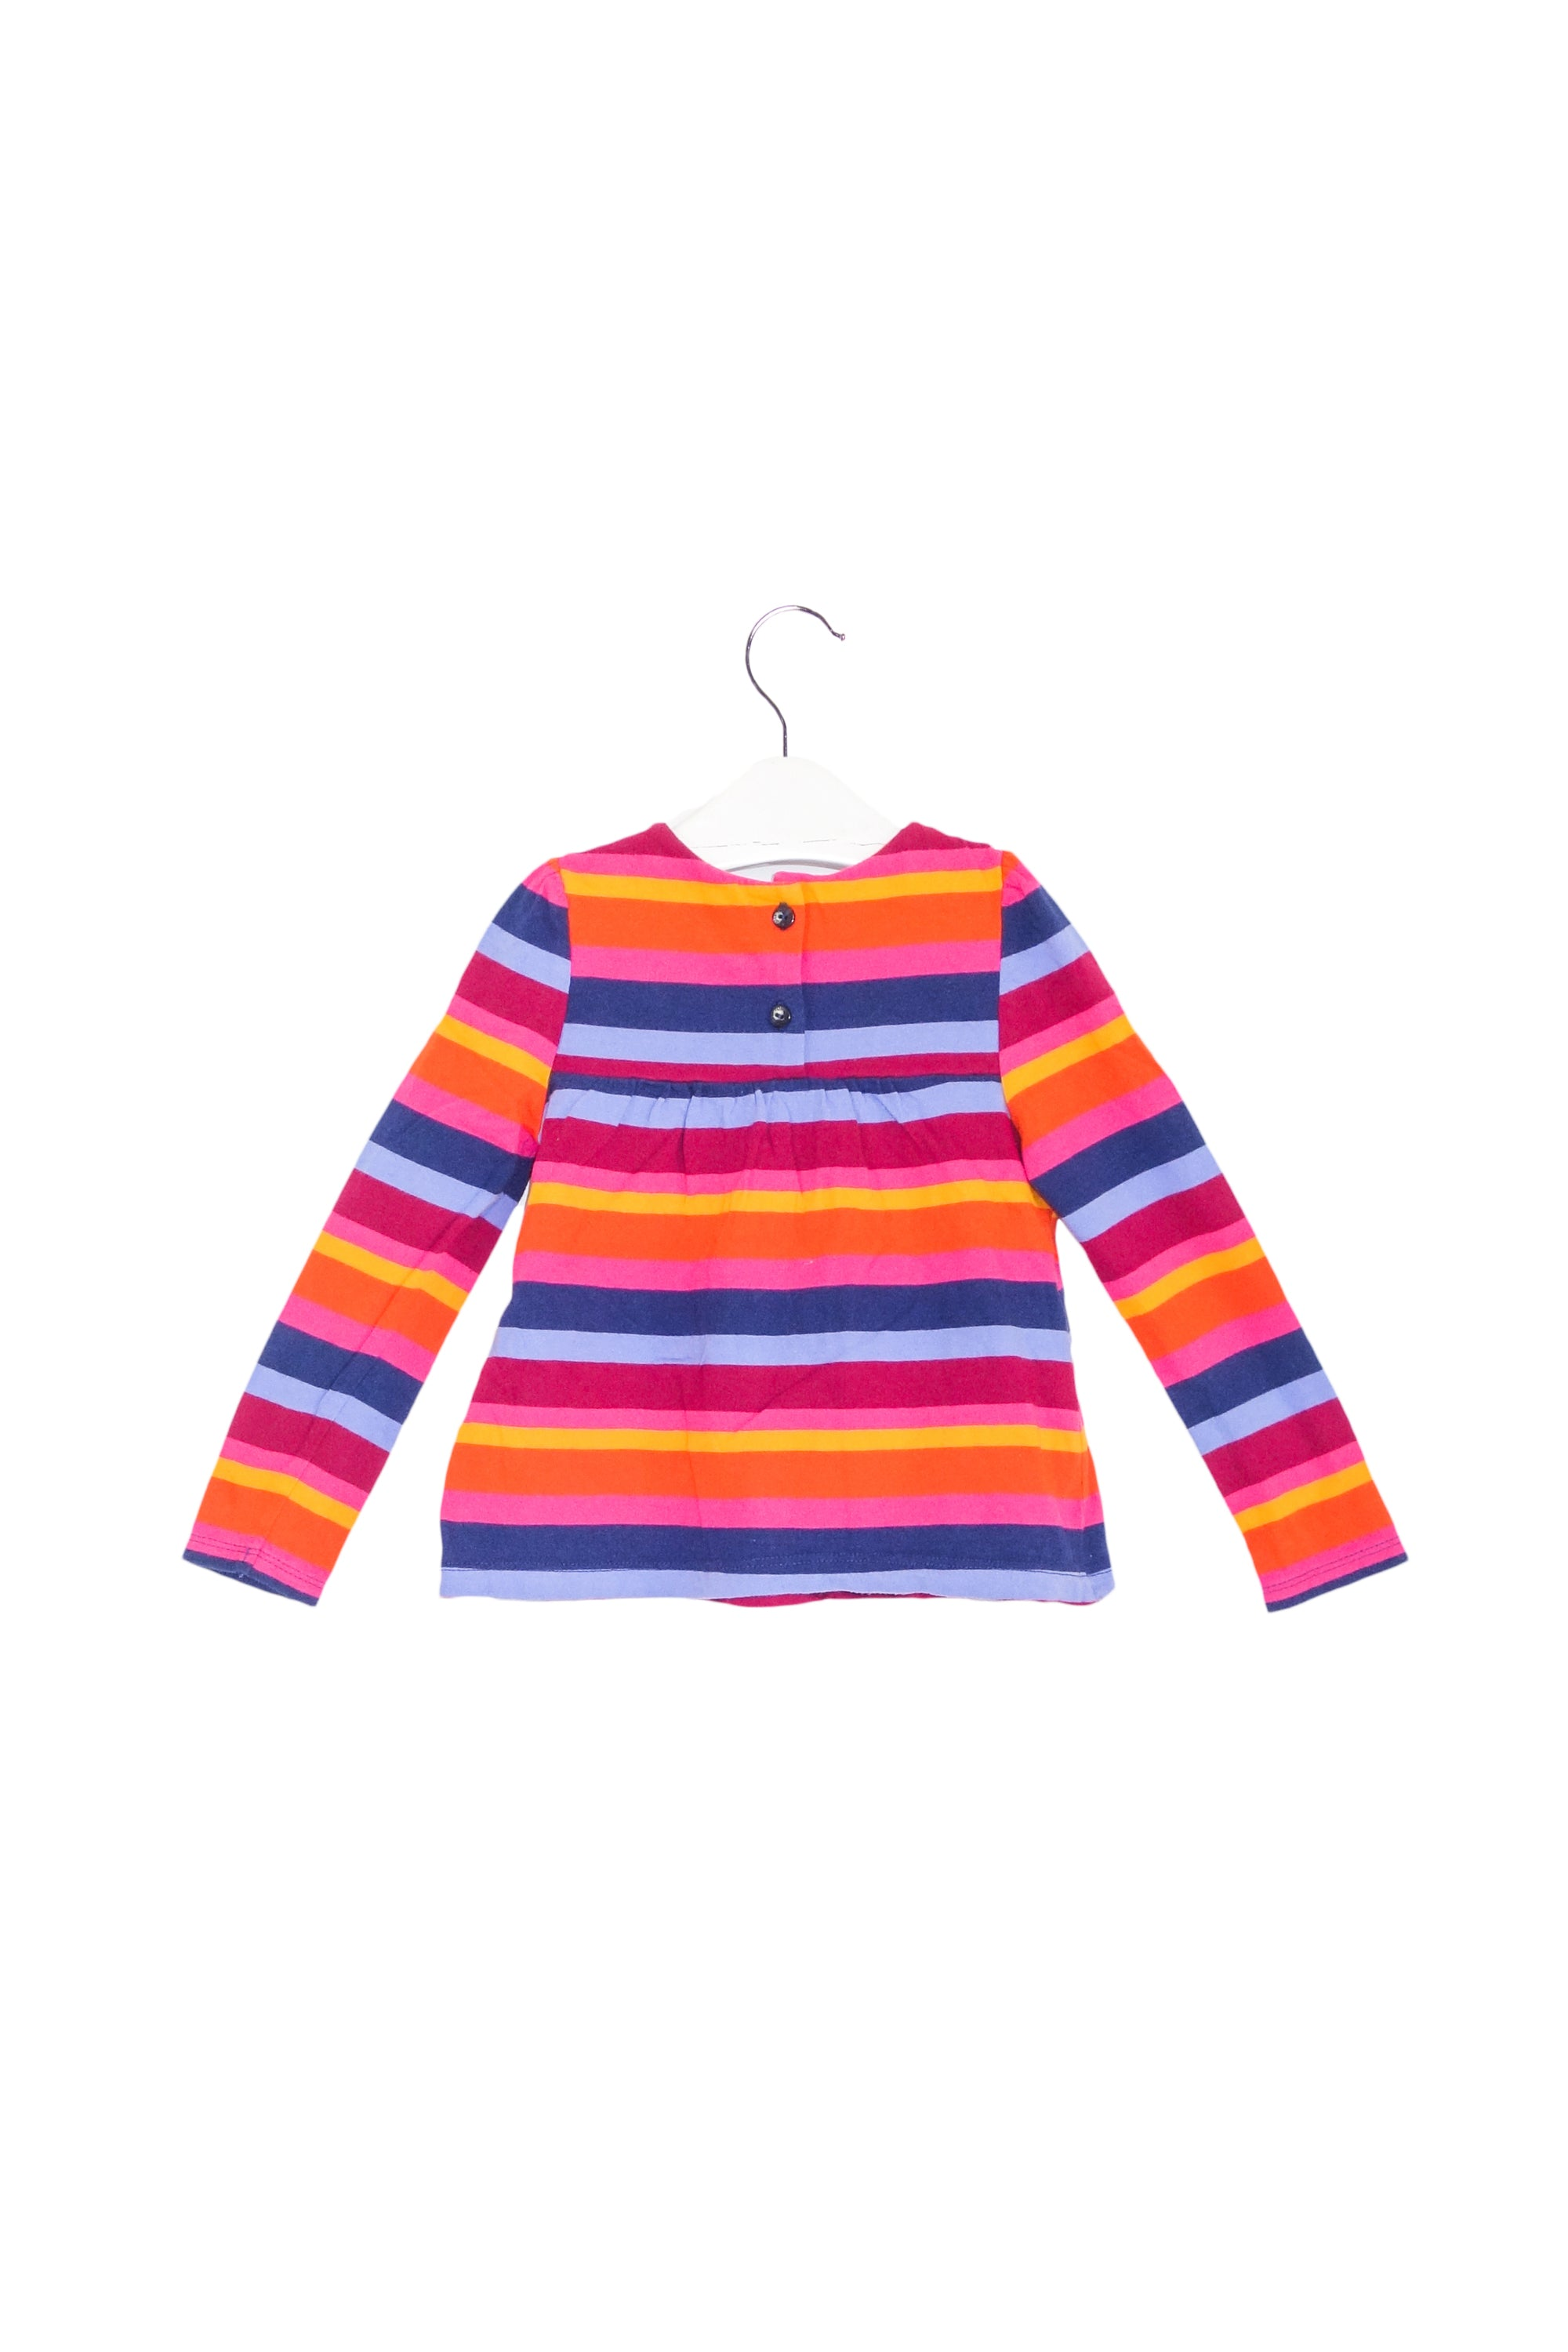 10013572 Tommy Hilfiger Kids ~ Top 3T at Retykle